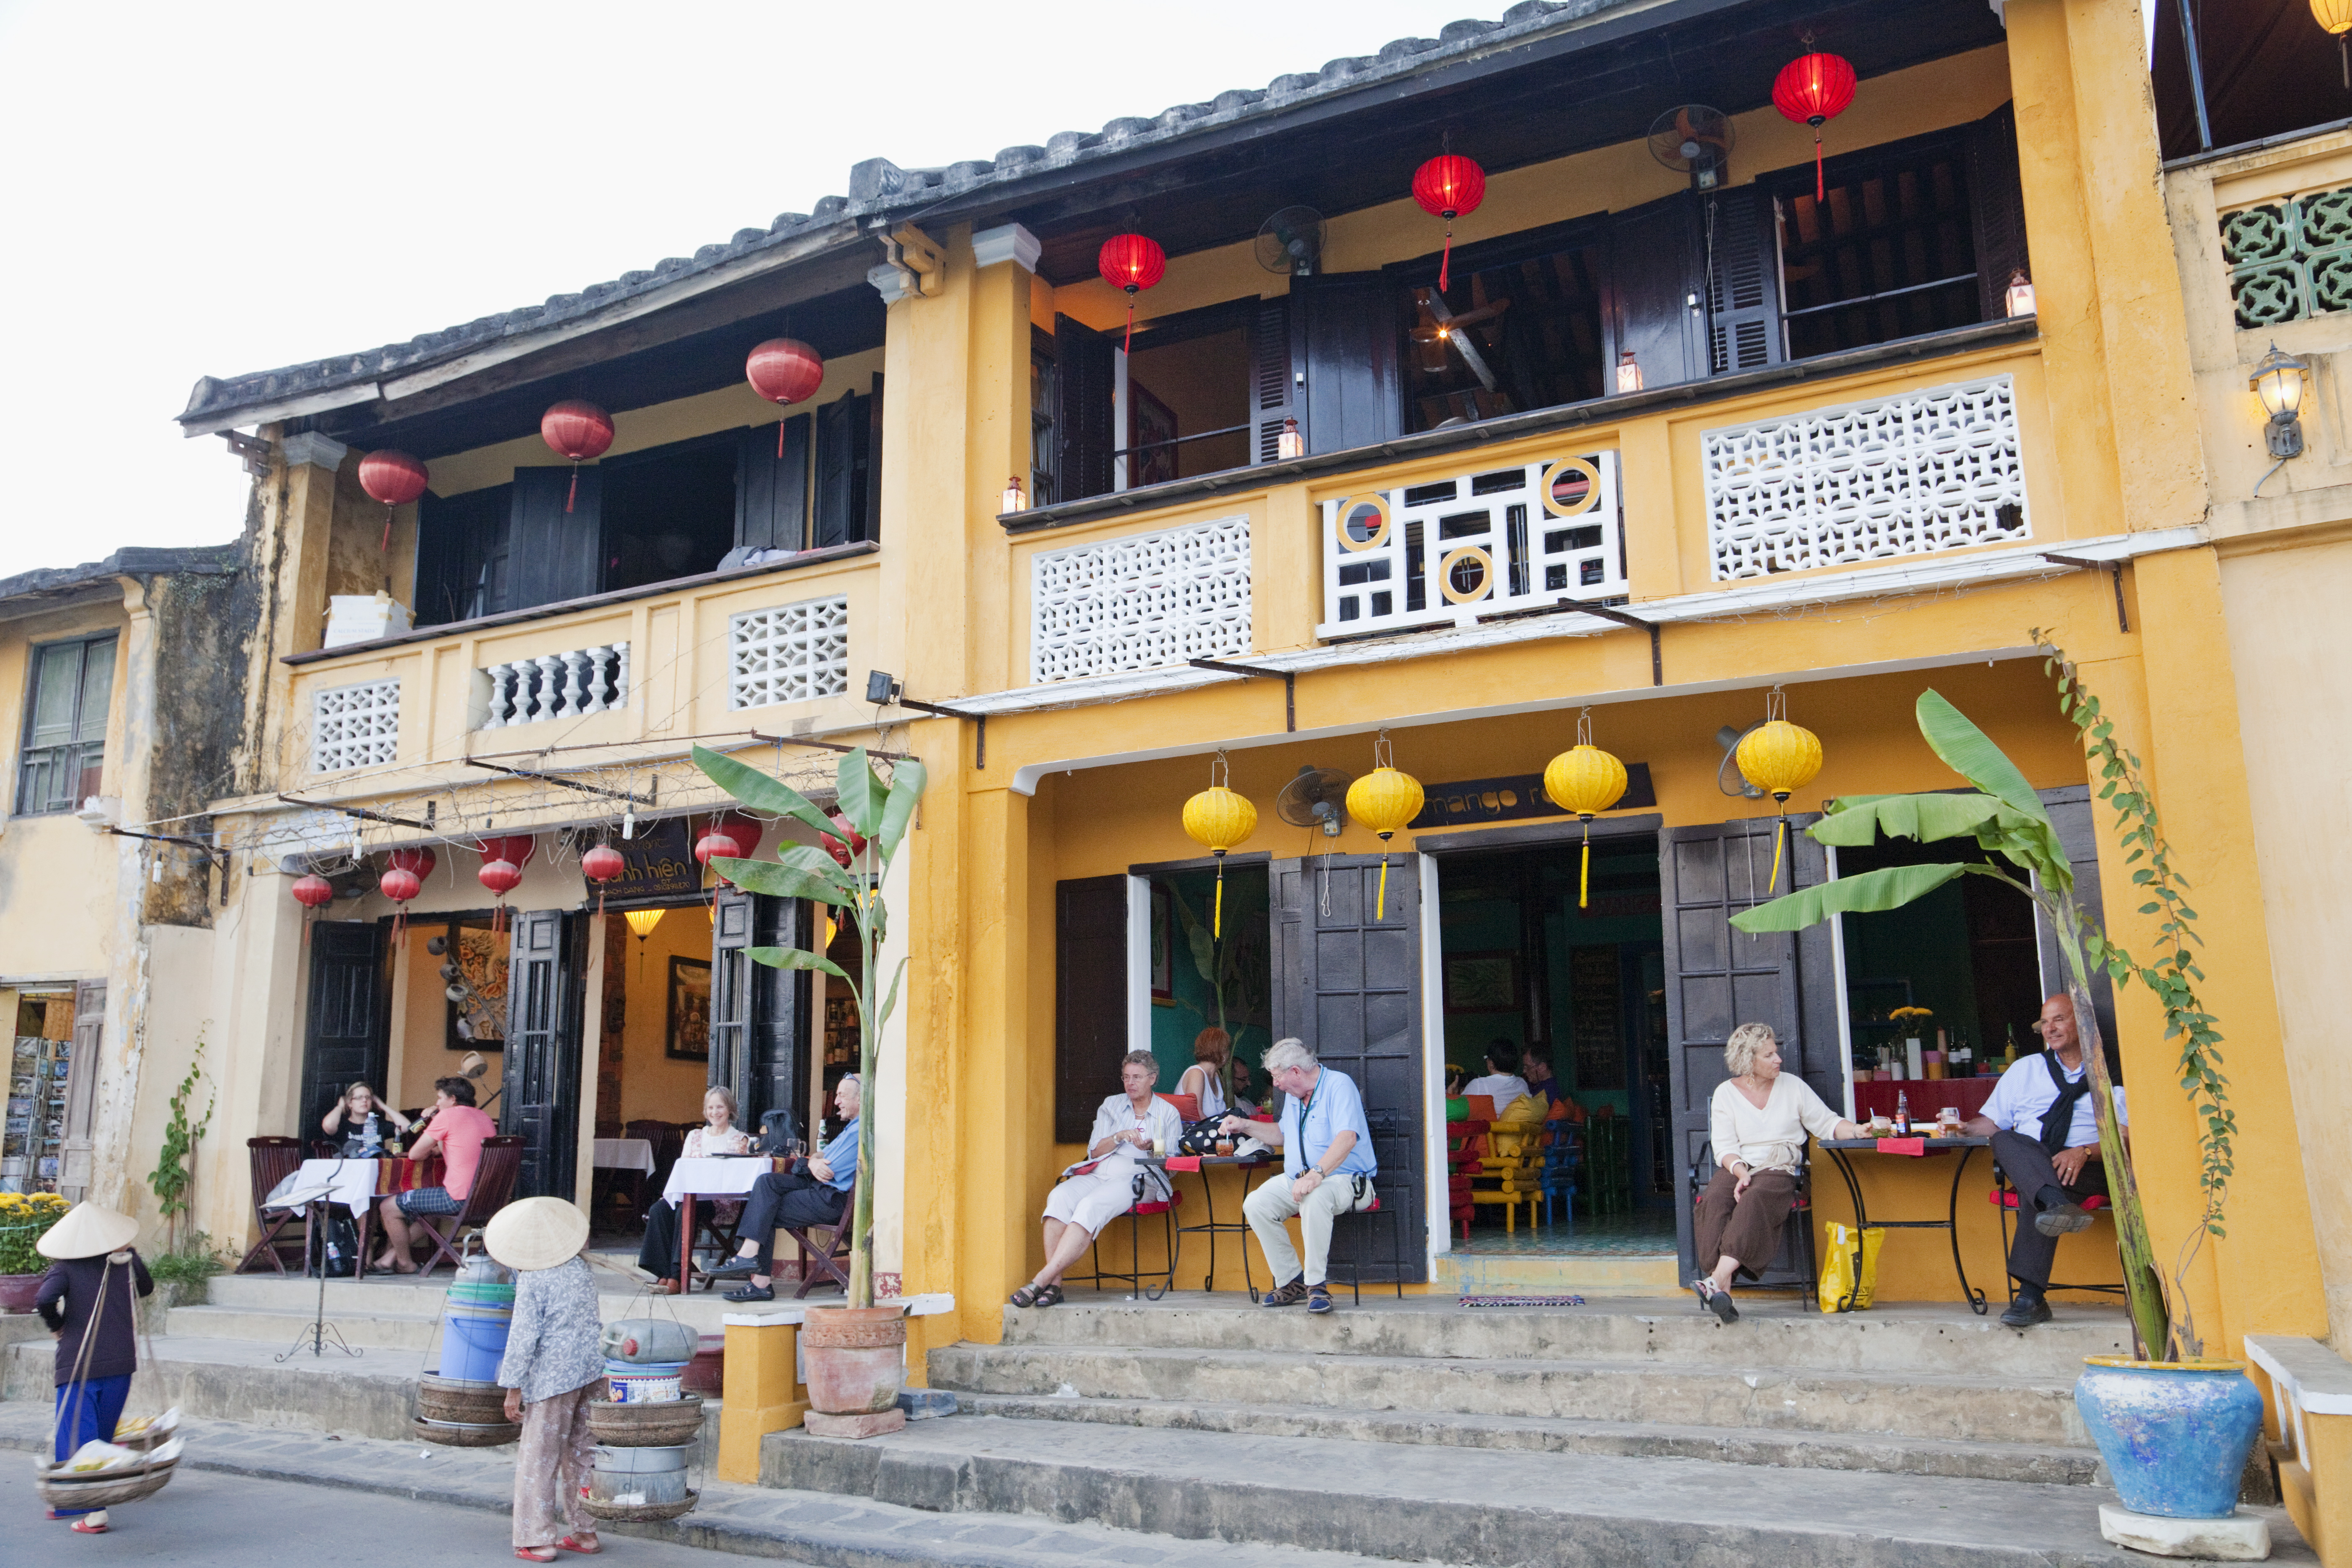 Waterfront cafes in the Old Town, Hoi An, Vietnam, Indochina, Southeast Asia, Asia